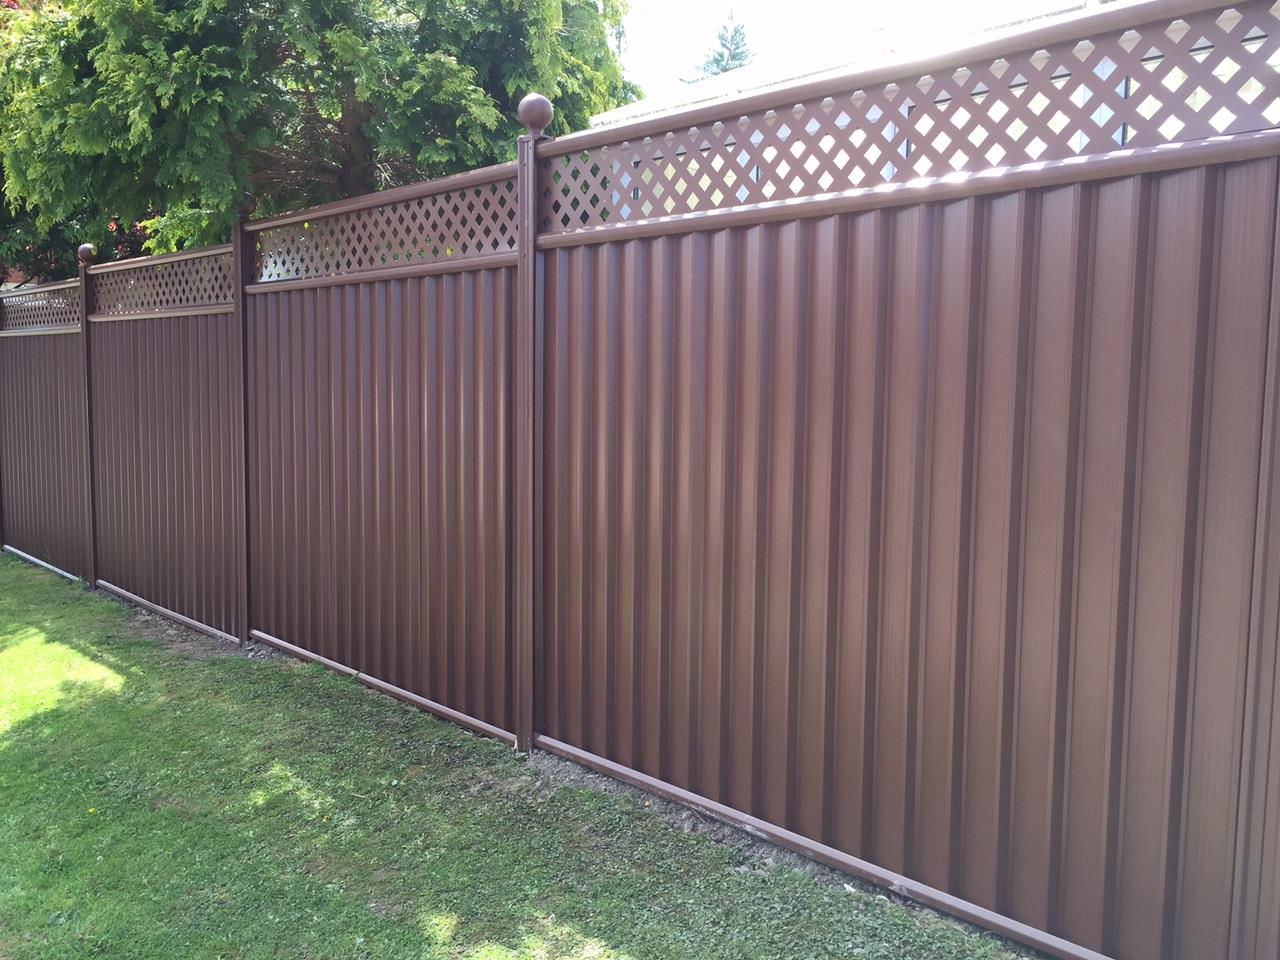 secure Colourfence garden fence